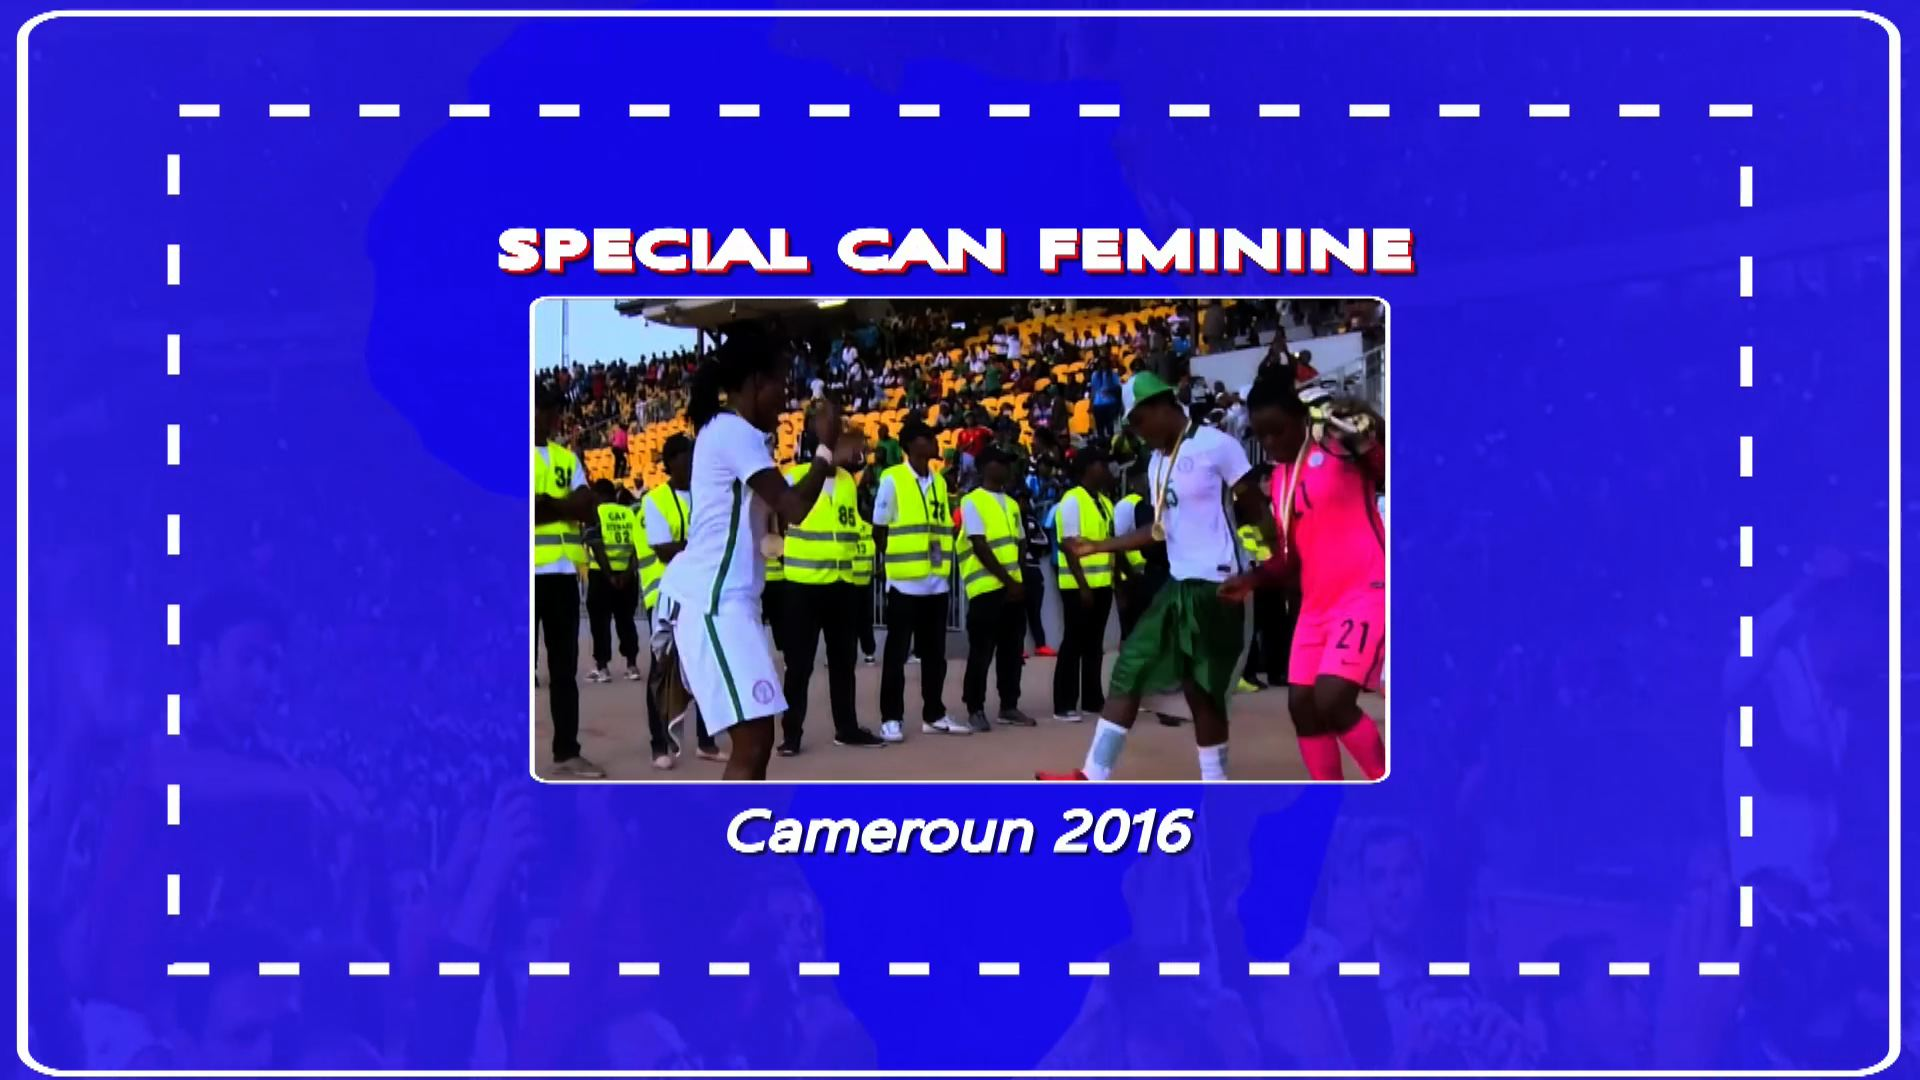 afg-spec-can-fem